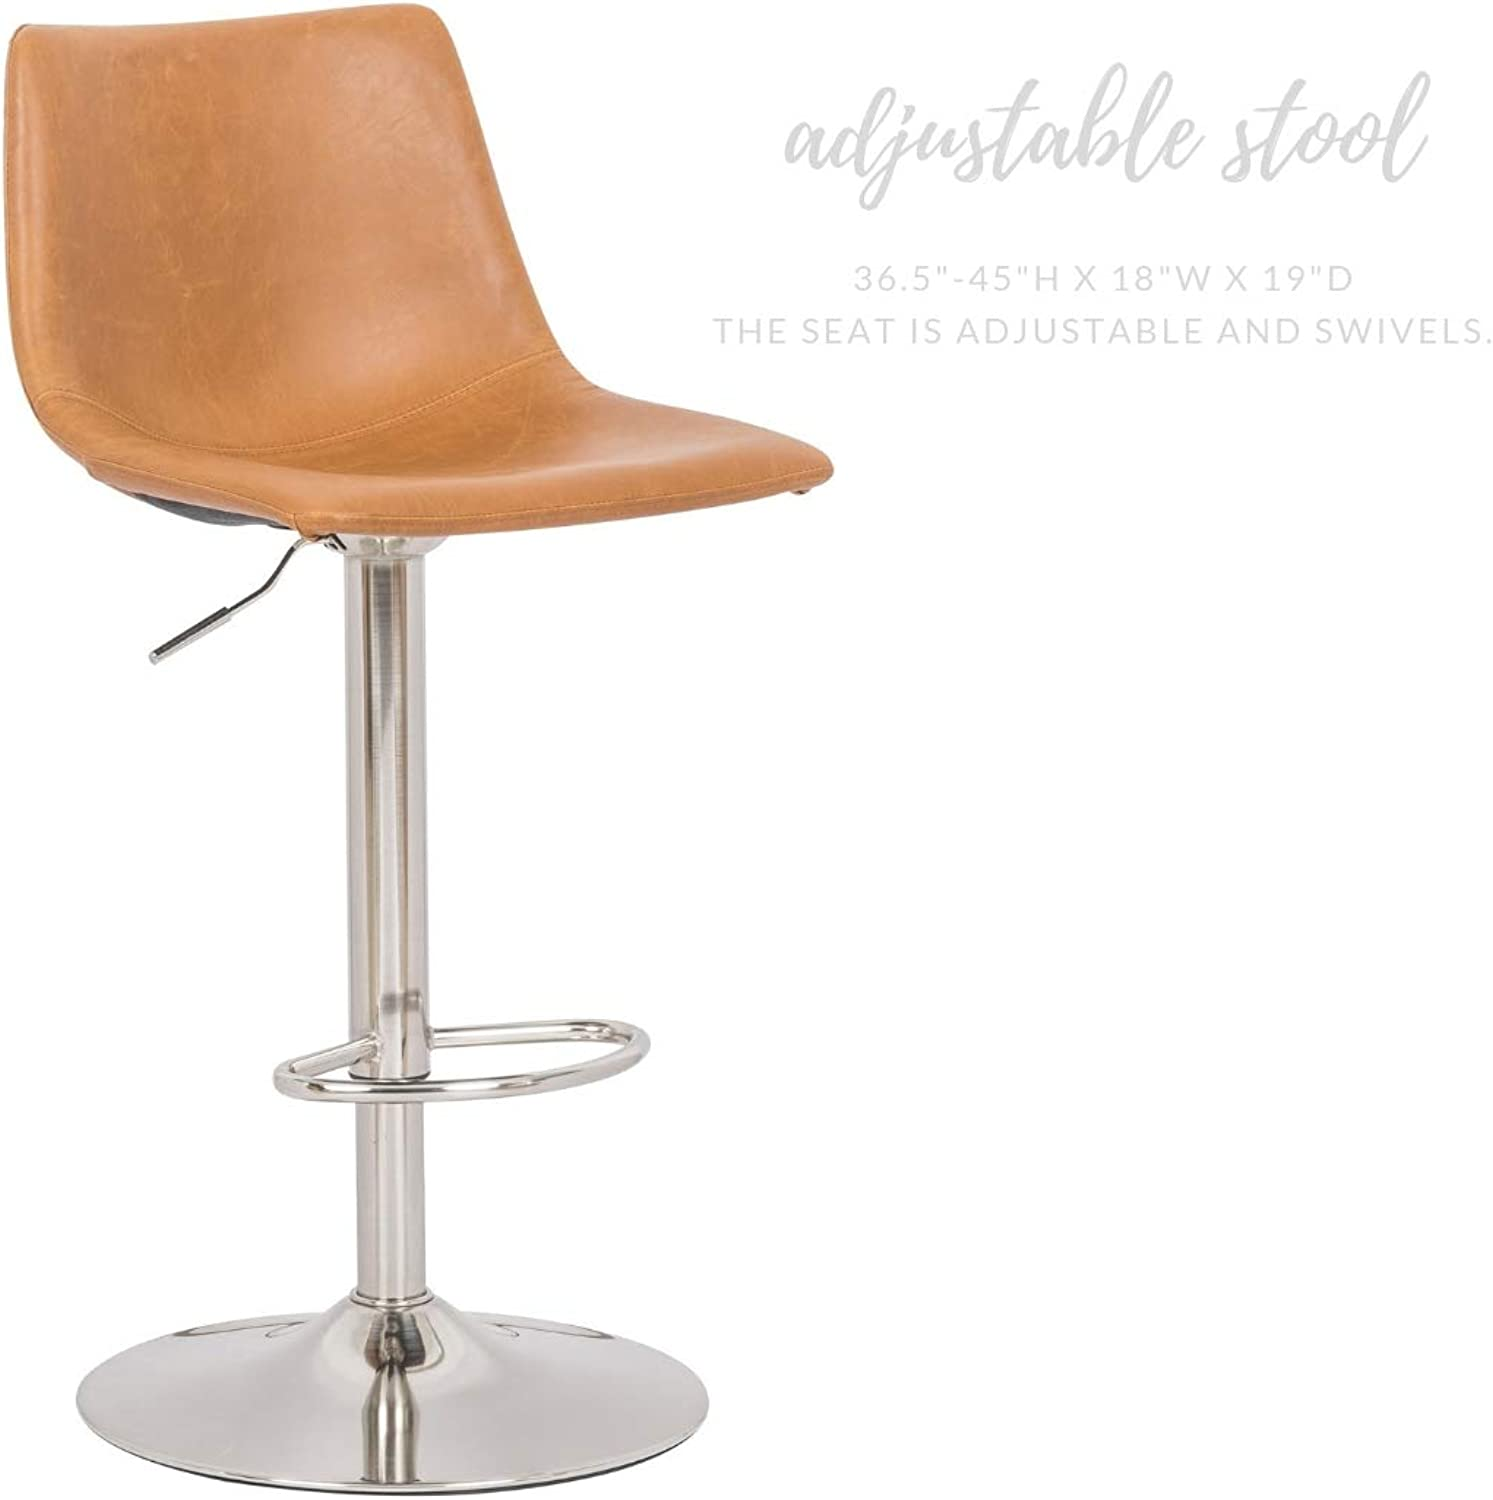 Take Me Home Furniture Oriel Adjustable Stool in Tan Pu with A Pedestal Chrome Base and Foot Rest in The Base